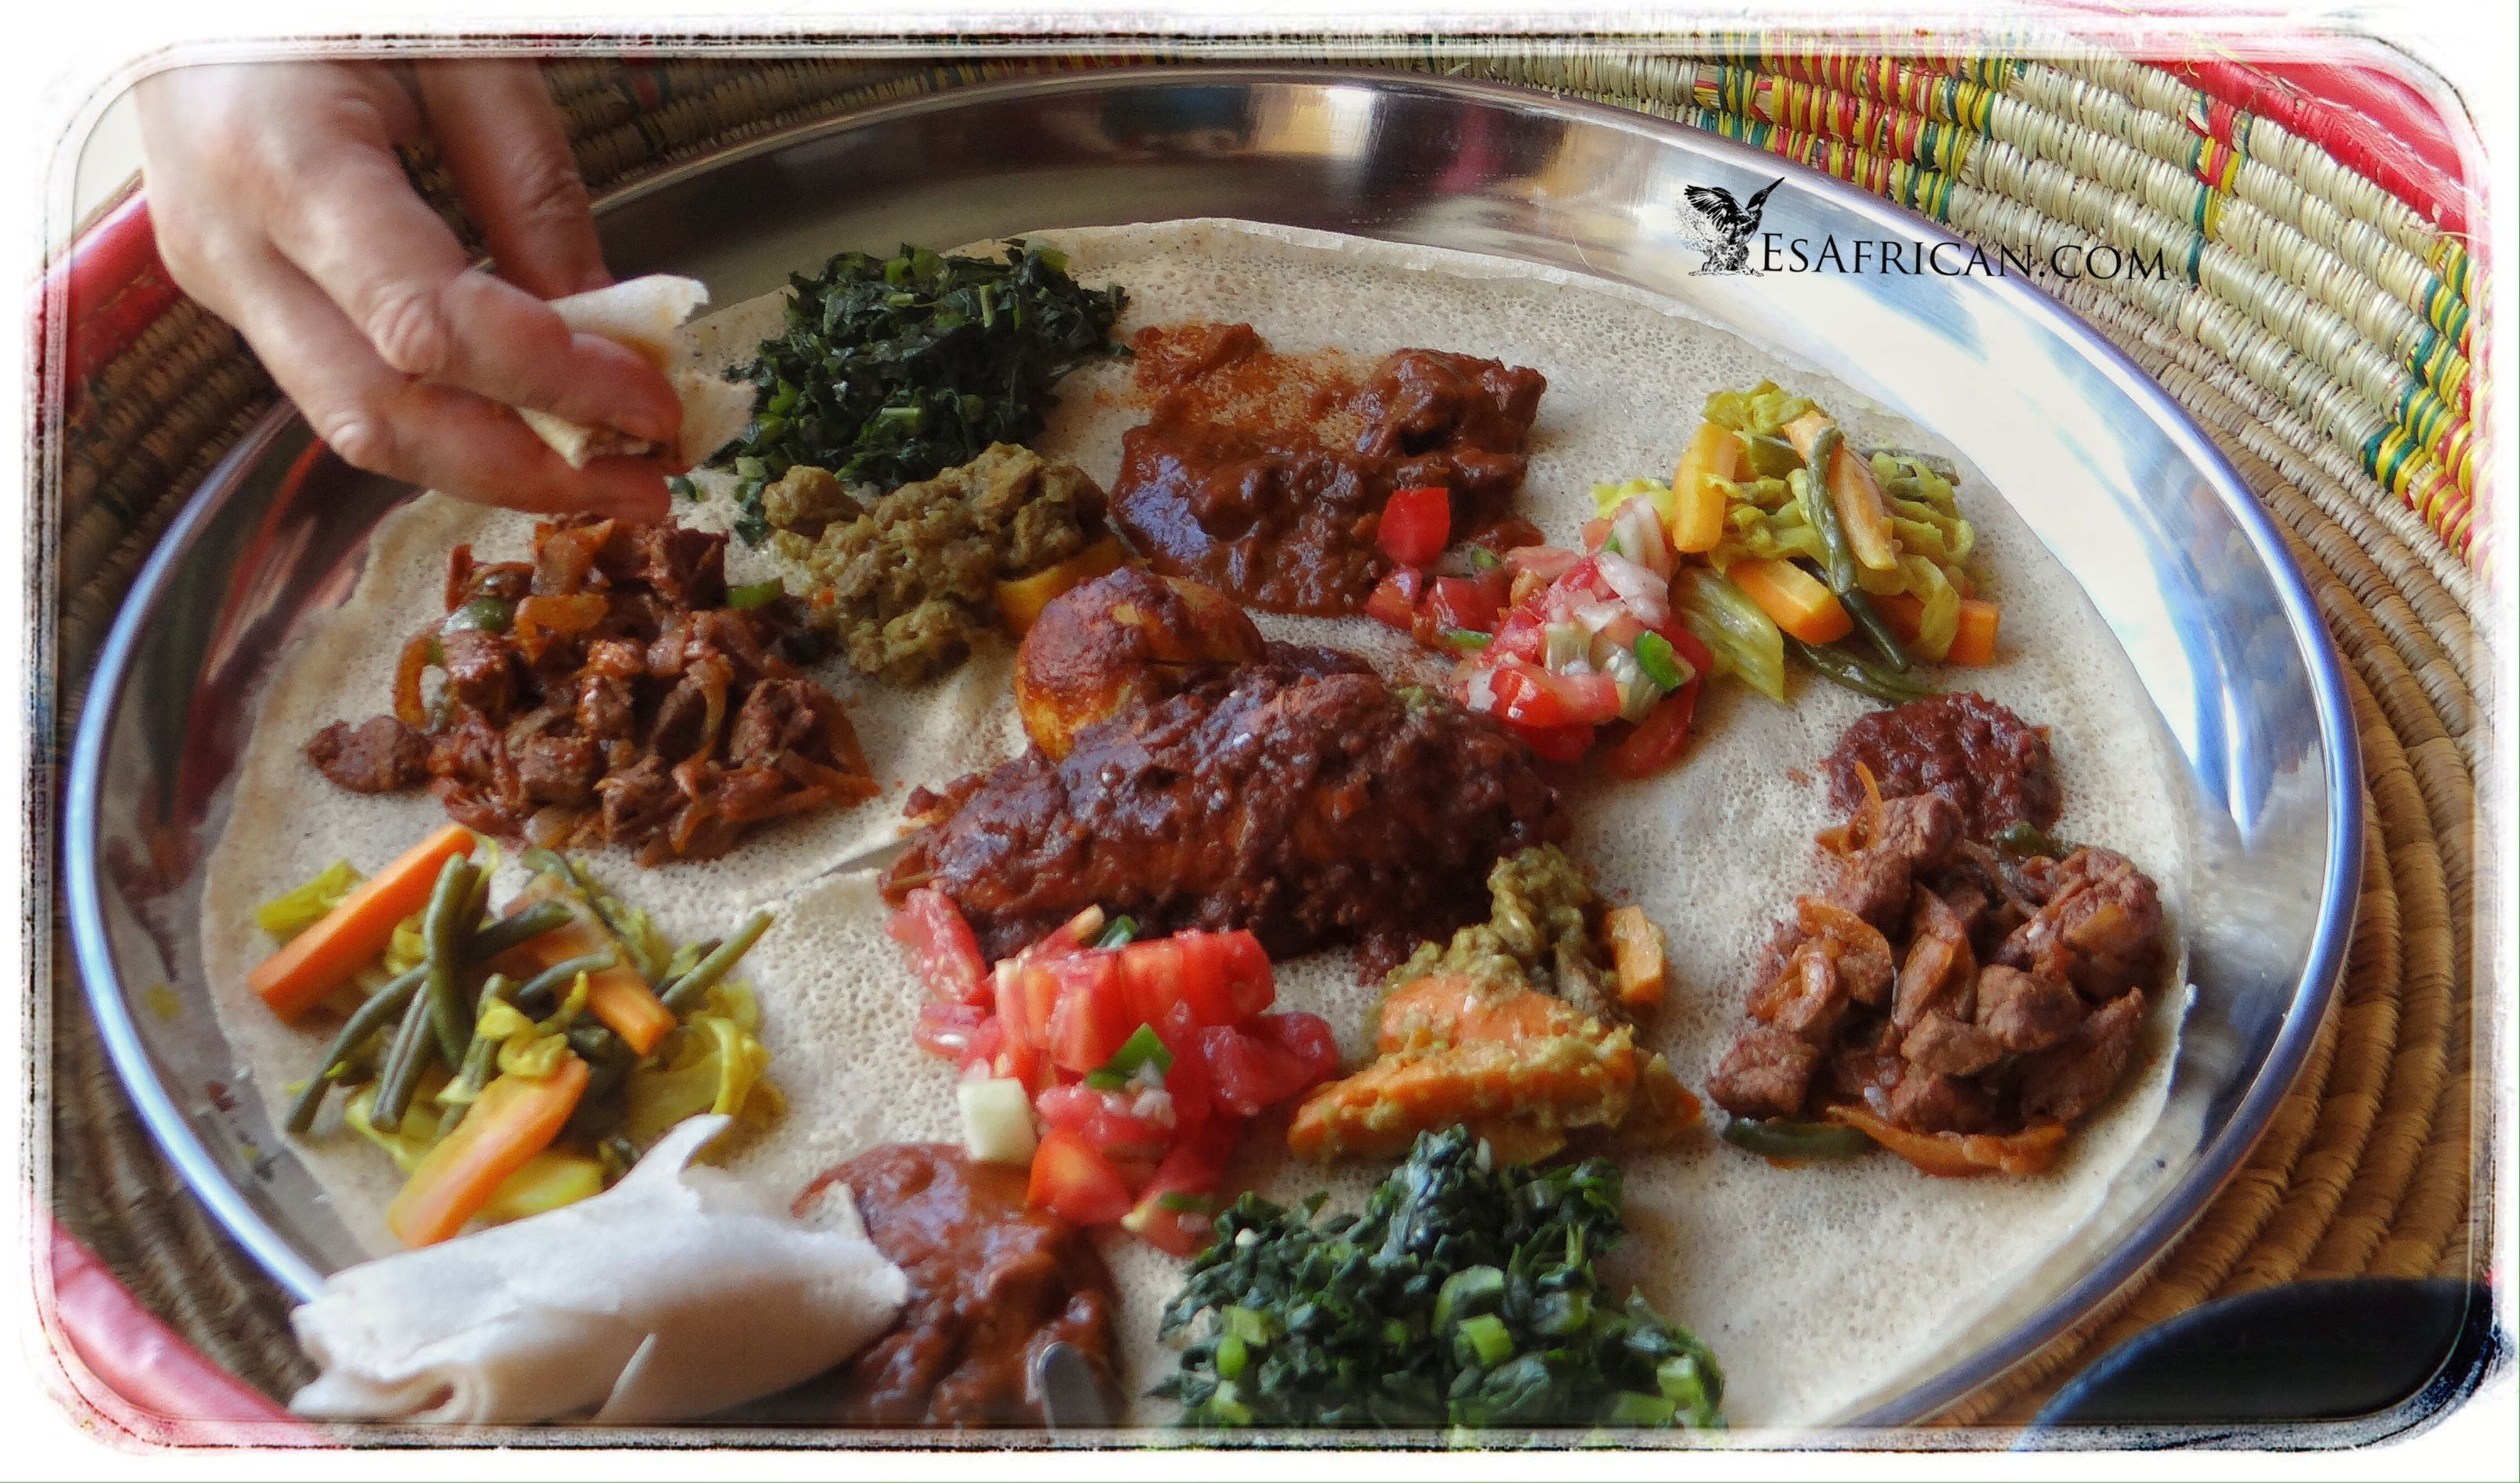 Delicious Ethiopian food is place on the injera within the moseb basket